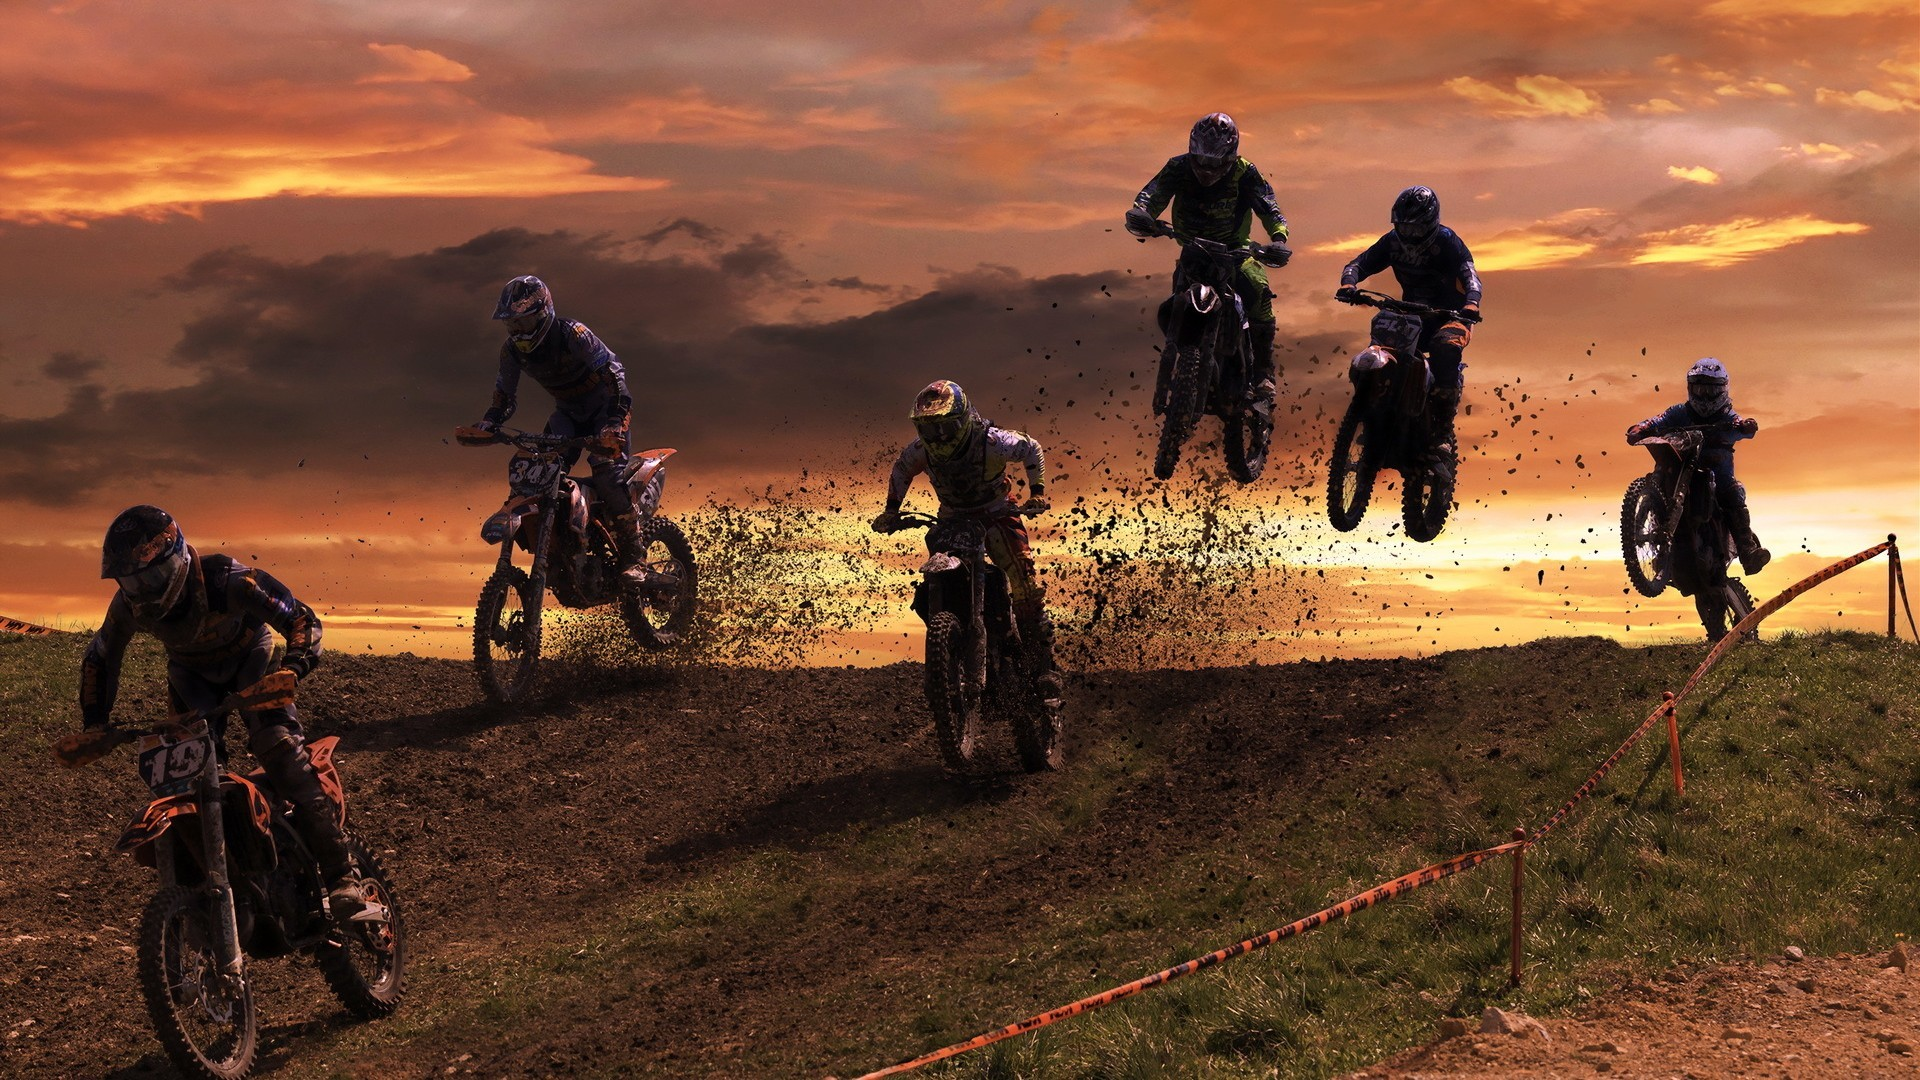 1920x1280 Motocross Wallpapers Wallpaper 2000A 1331 39